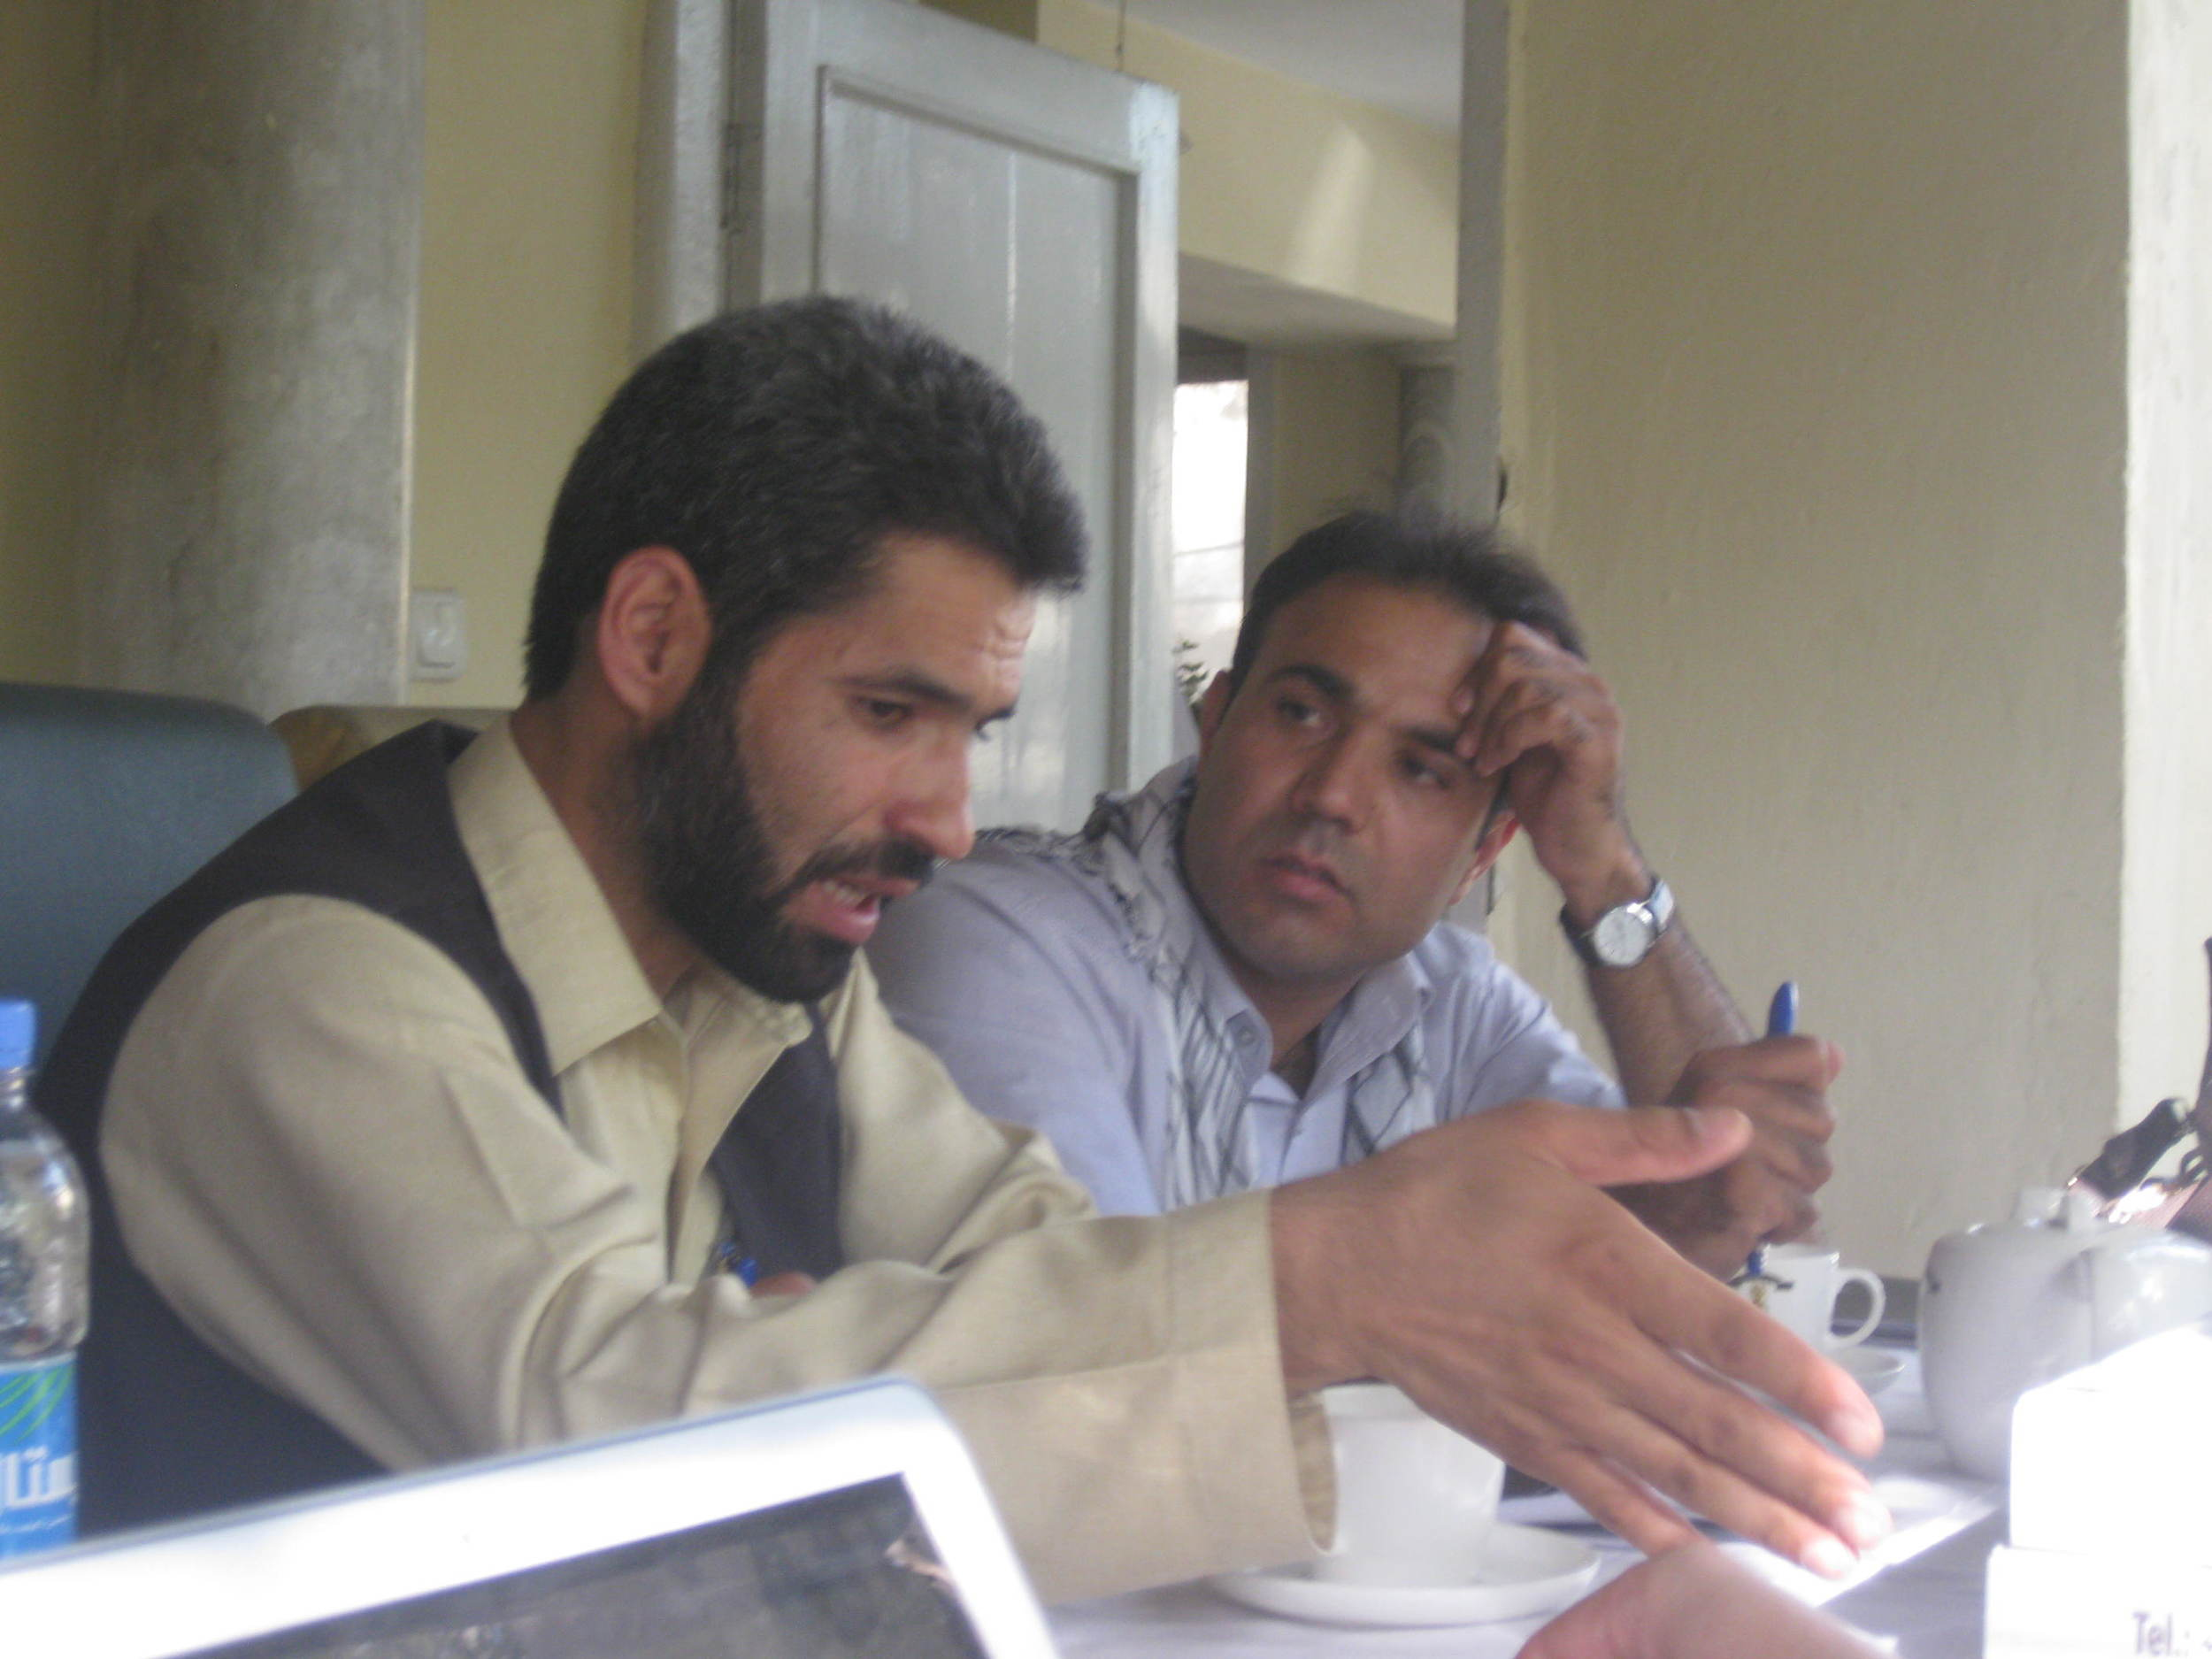 Zabiullah and Arman discuss things. Arman (right) has an amazing voice and sang some verses of the Koran as an auspicious opening for our workshop. He also showed me his Afghan pop music video!